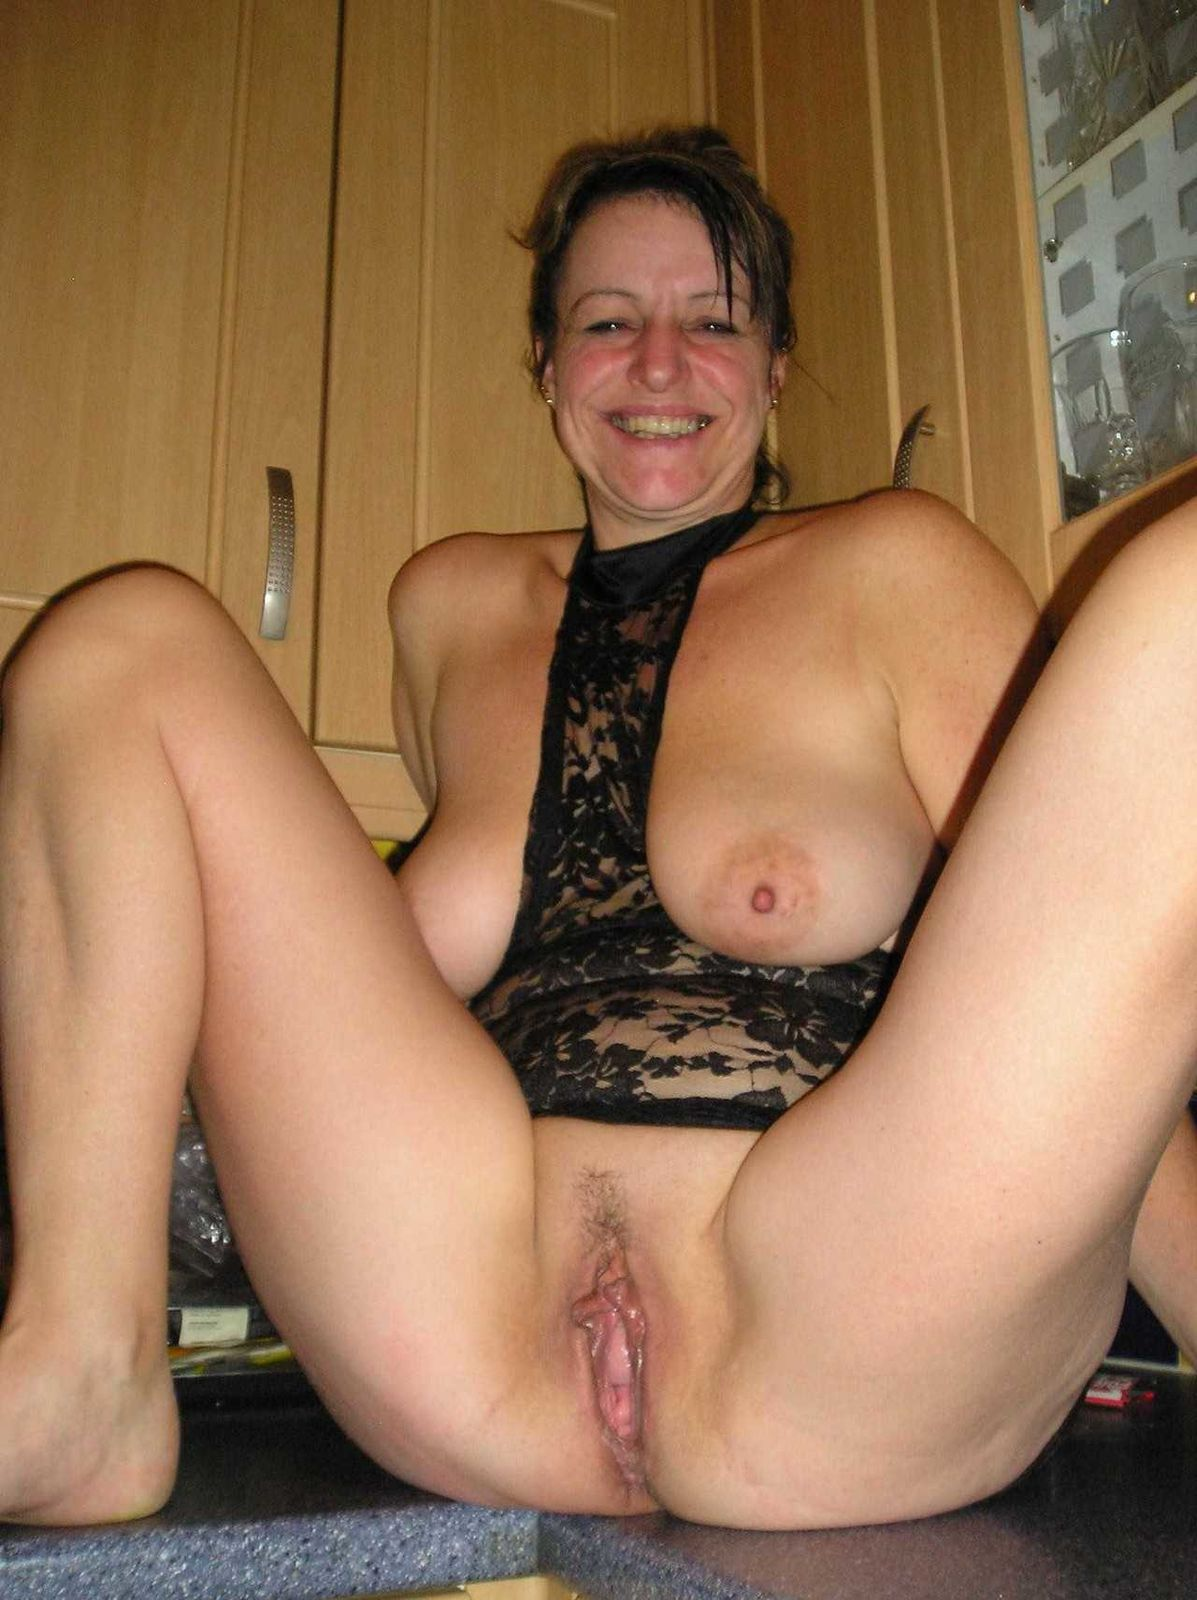 rencontre mature libertine Vienne